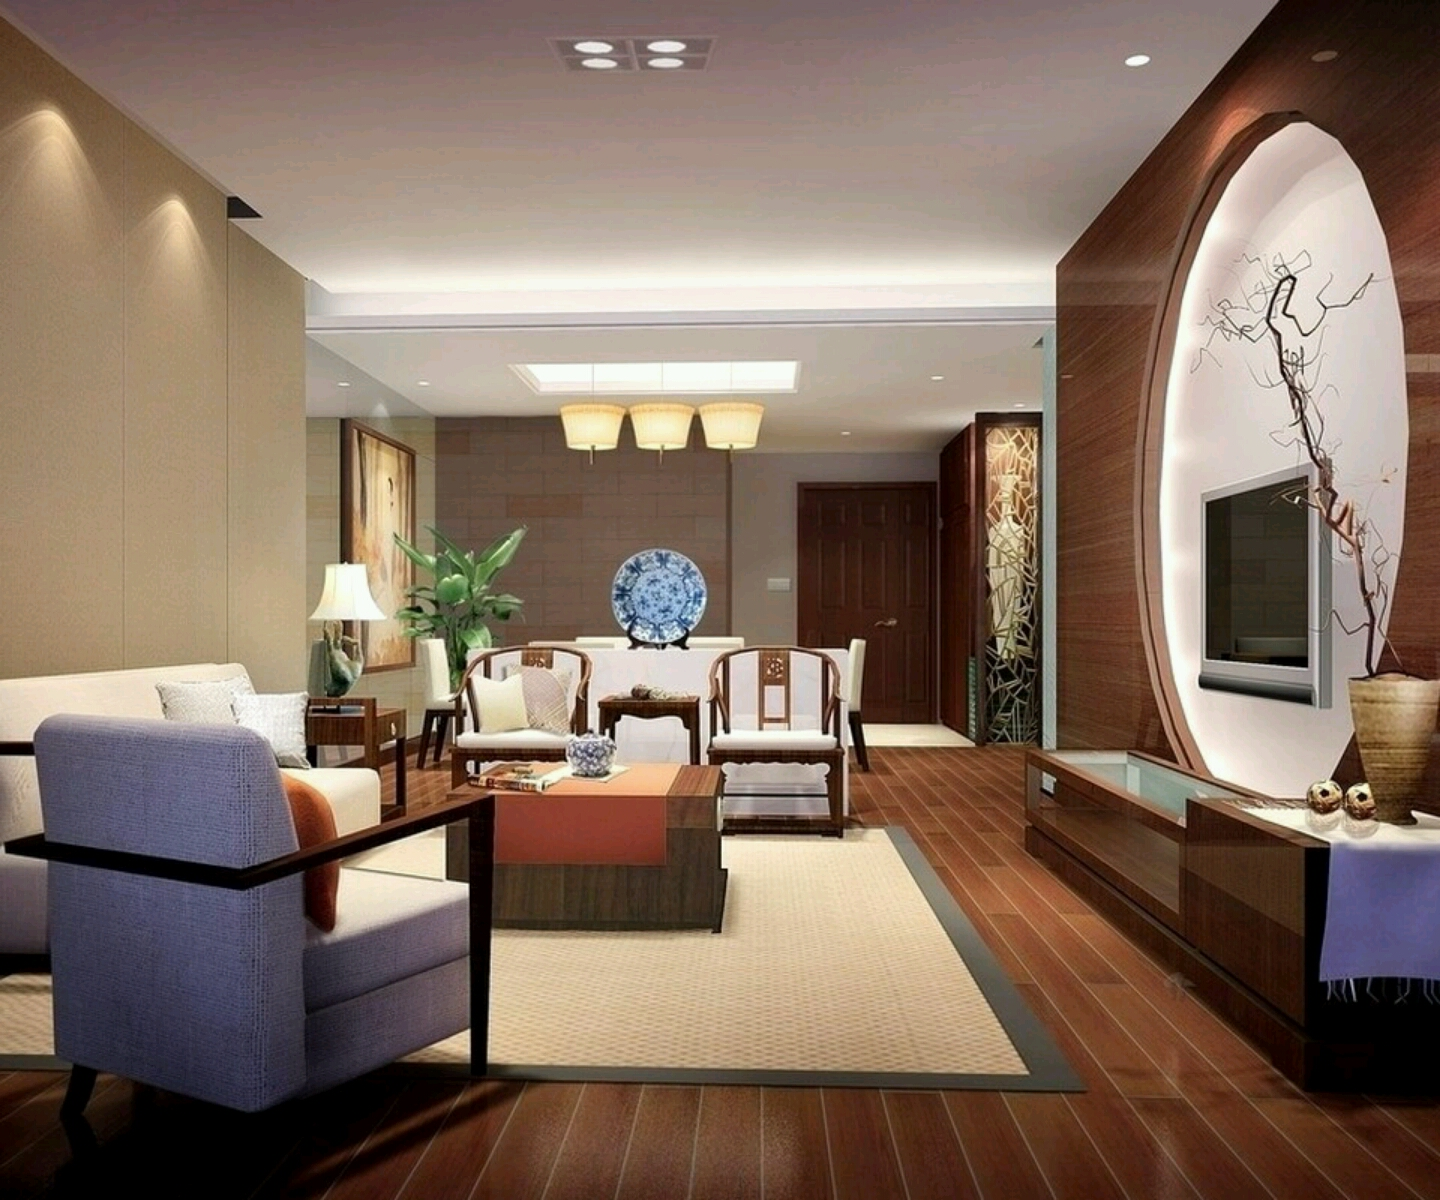 Luxury homes interior decoration living room designs ideas modern home designs - Design home interiors ...